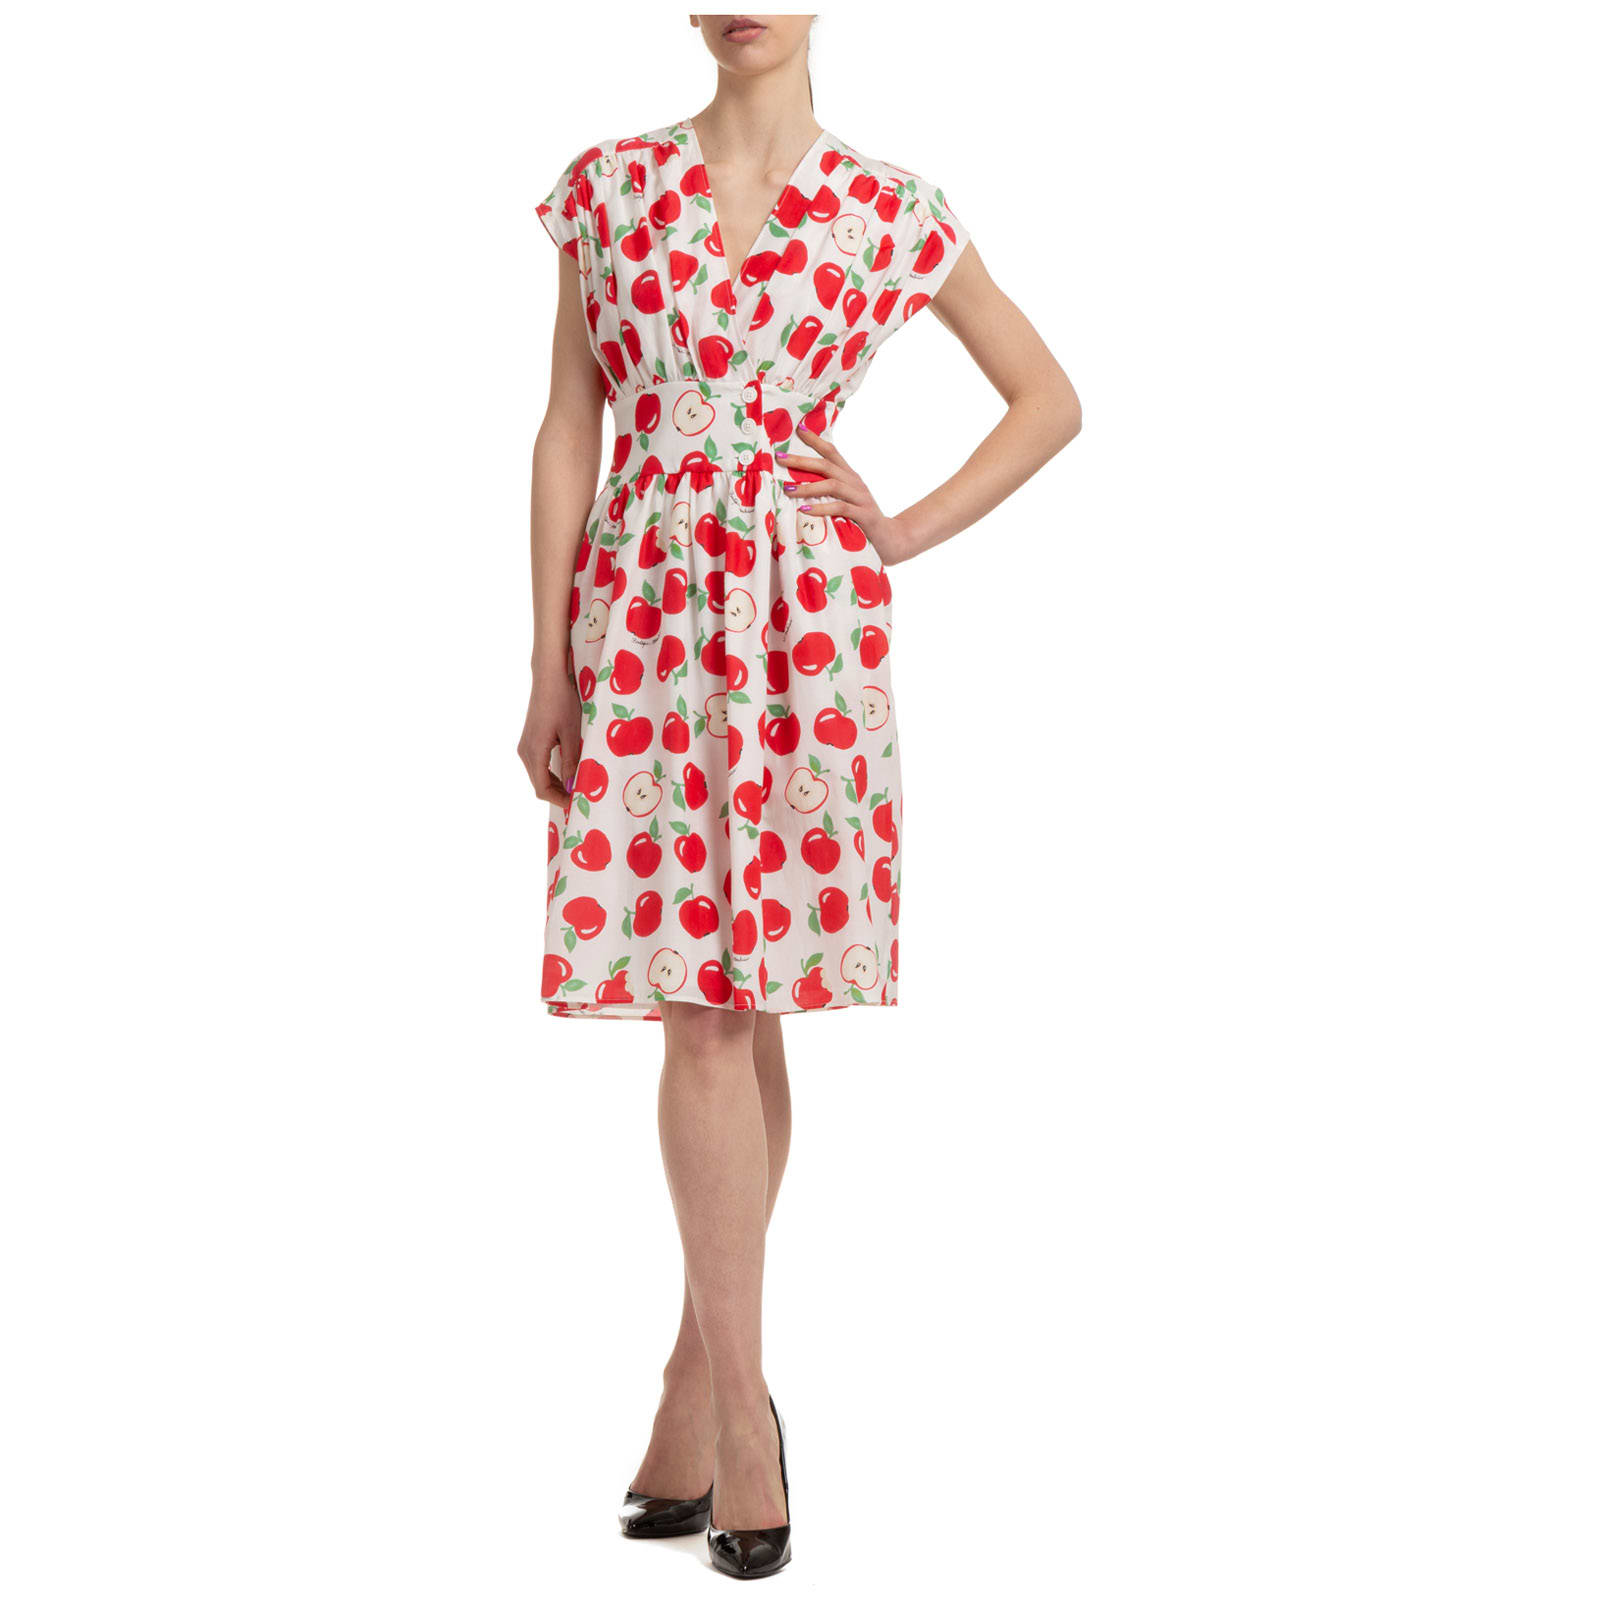 Boutique Moschino Ines Knee Length Dresses